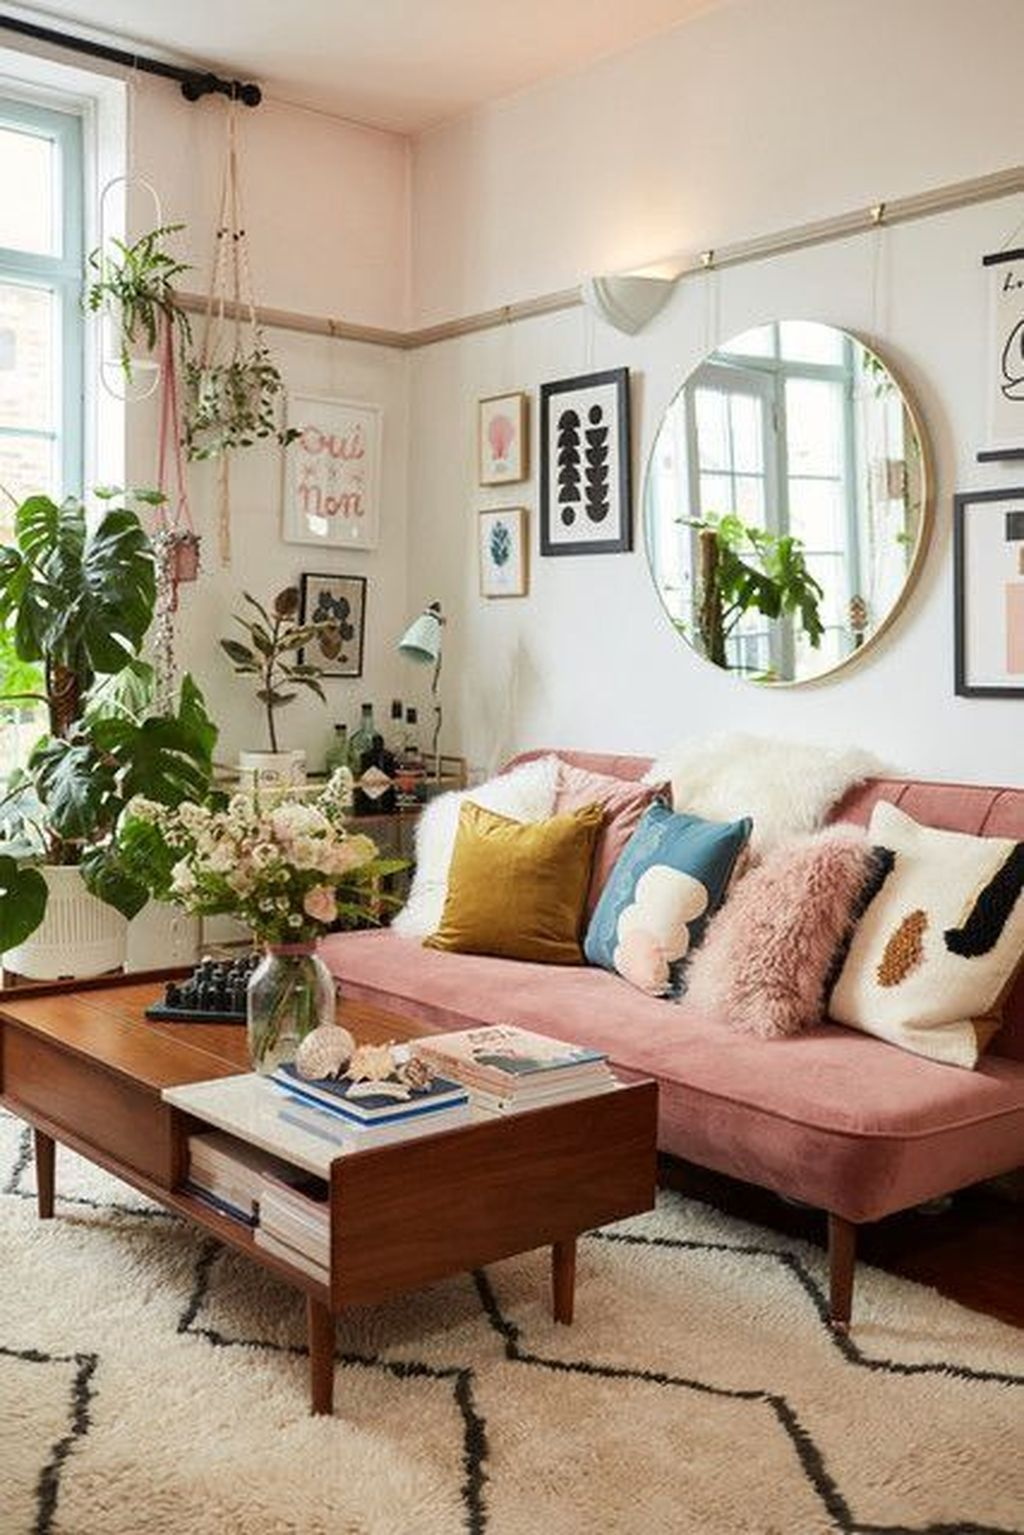 Stylish Rustic Living Room Decor Ideas 20